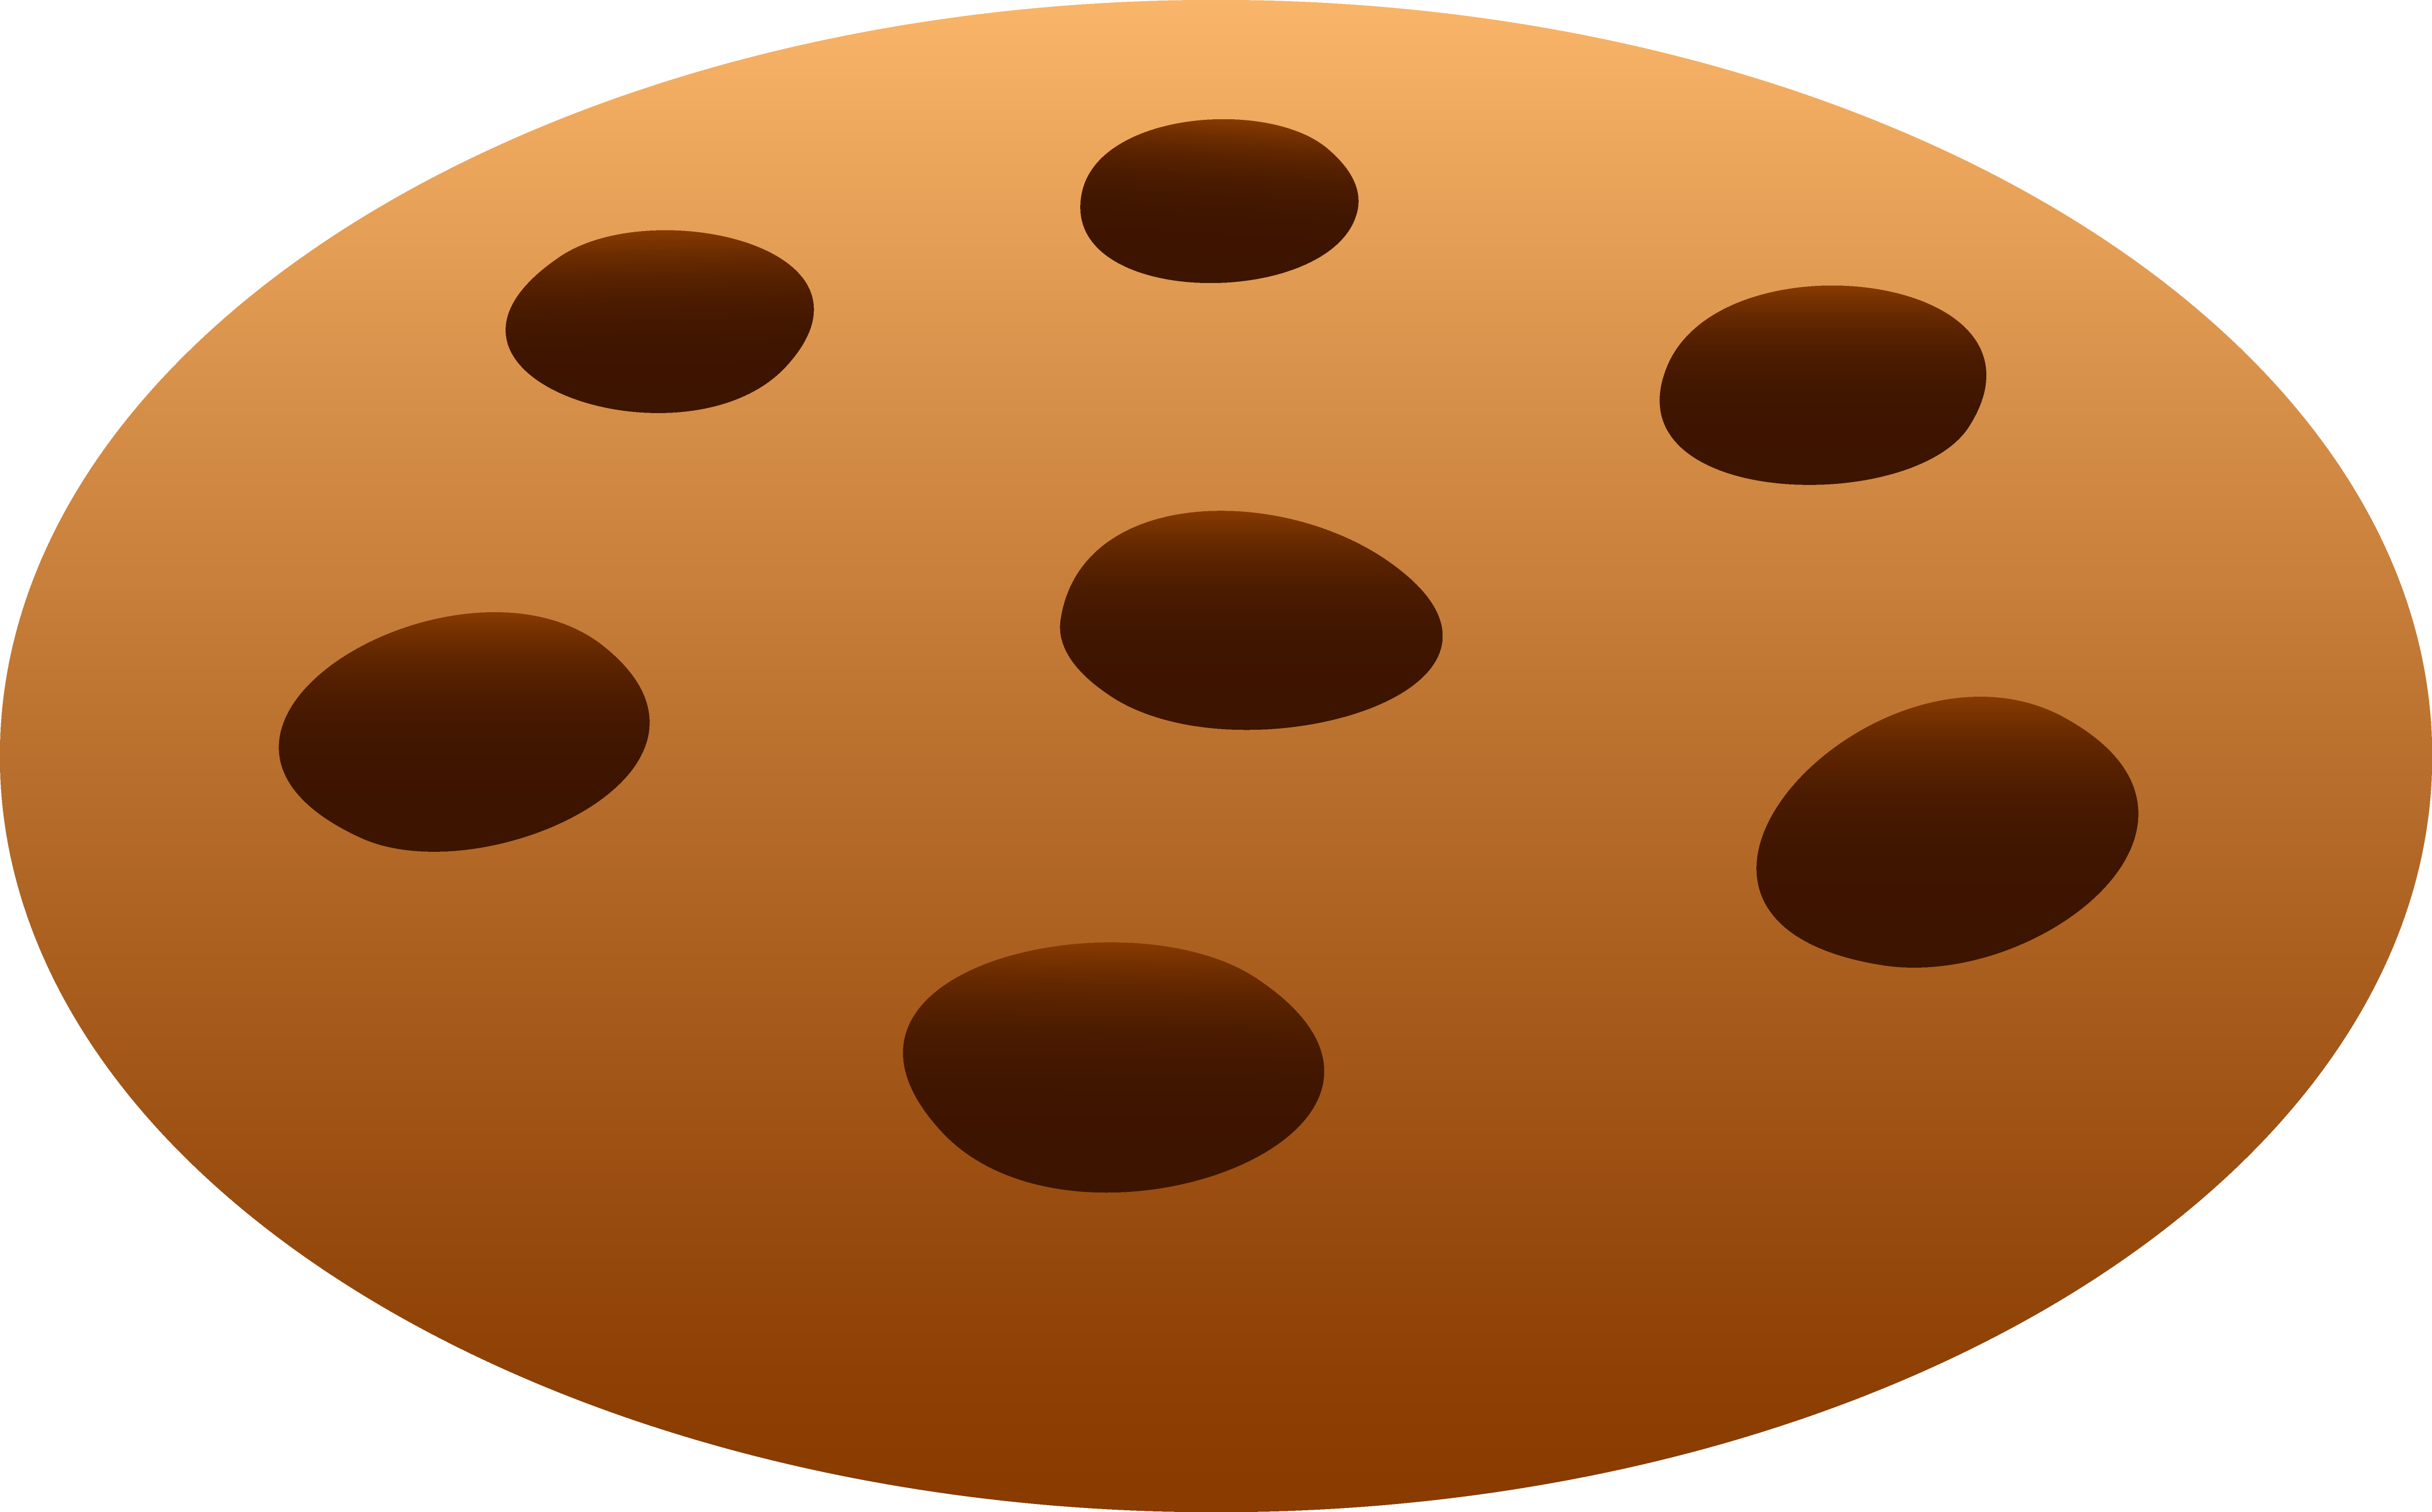 Cookie clipart 1